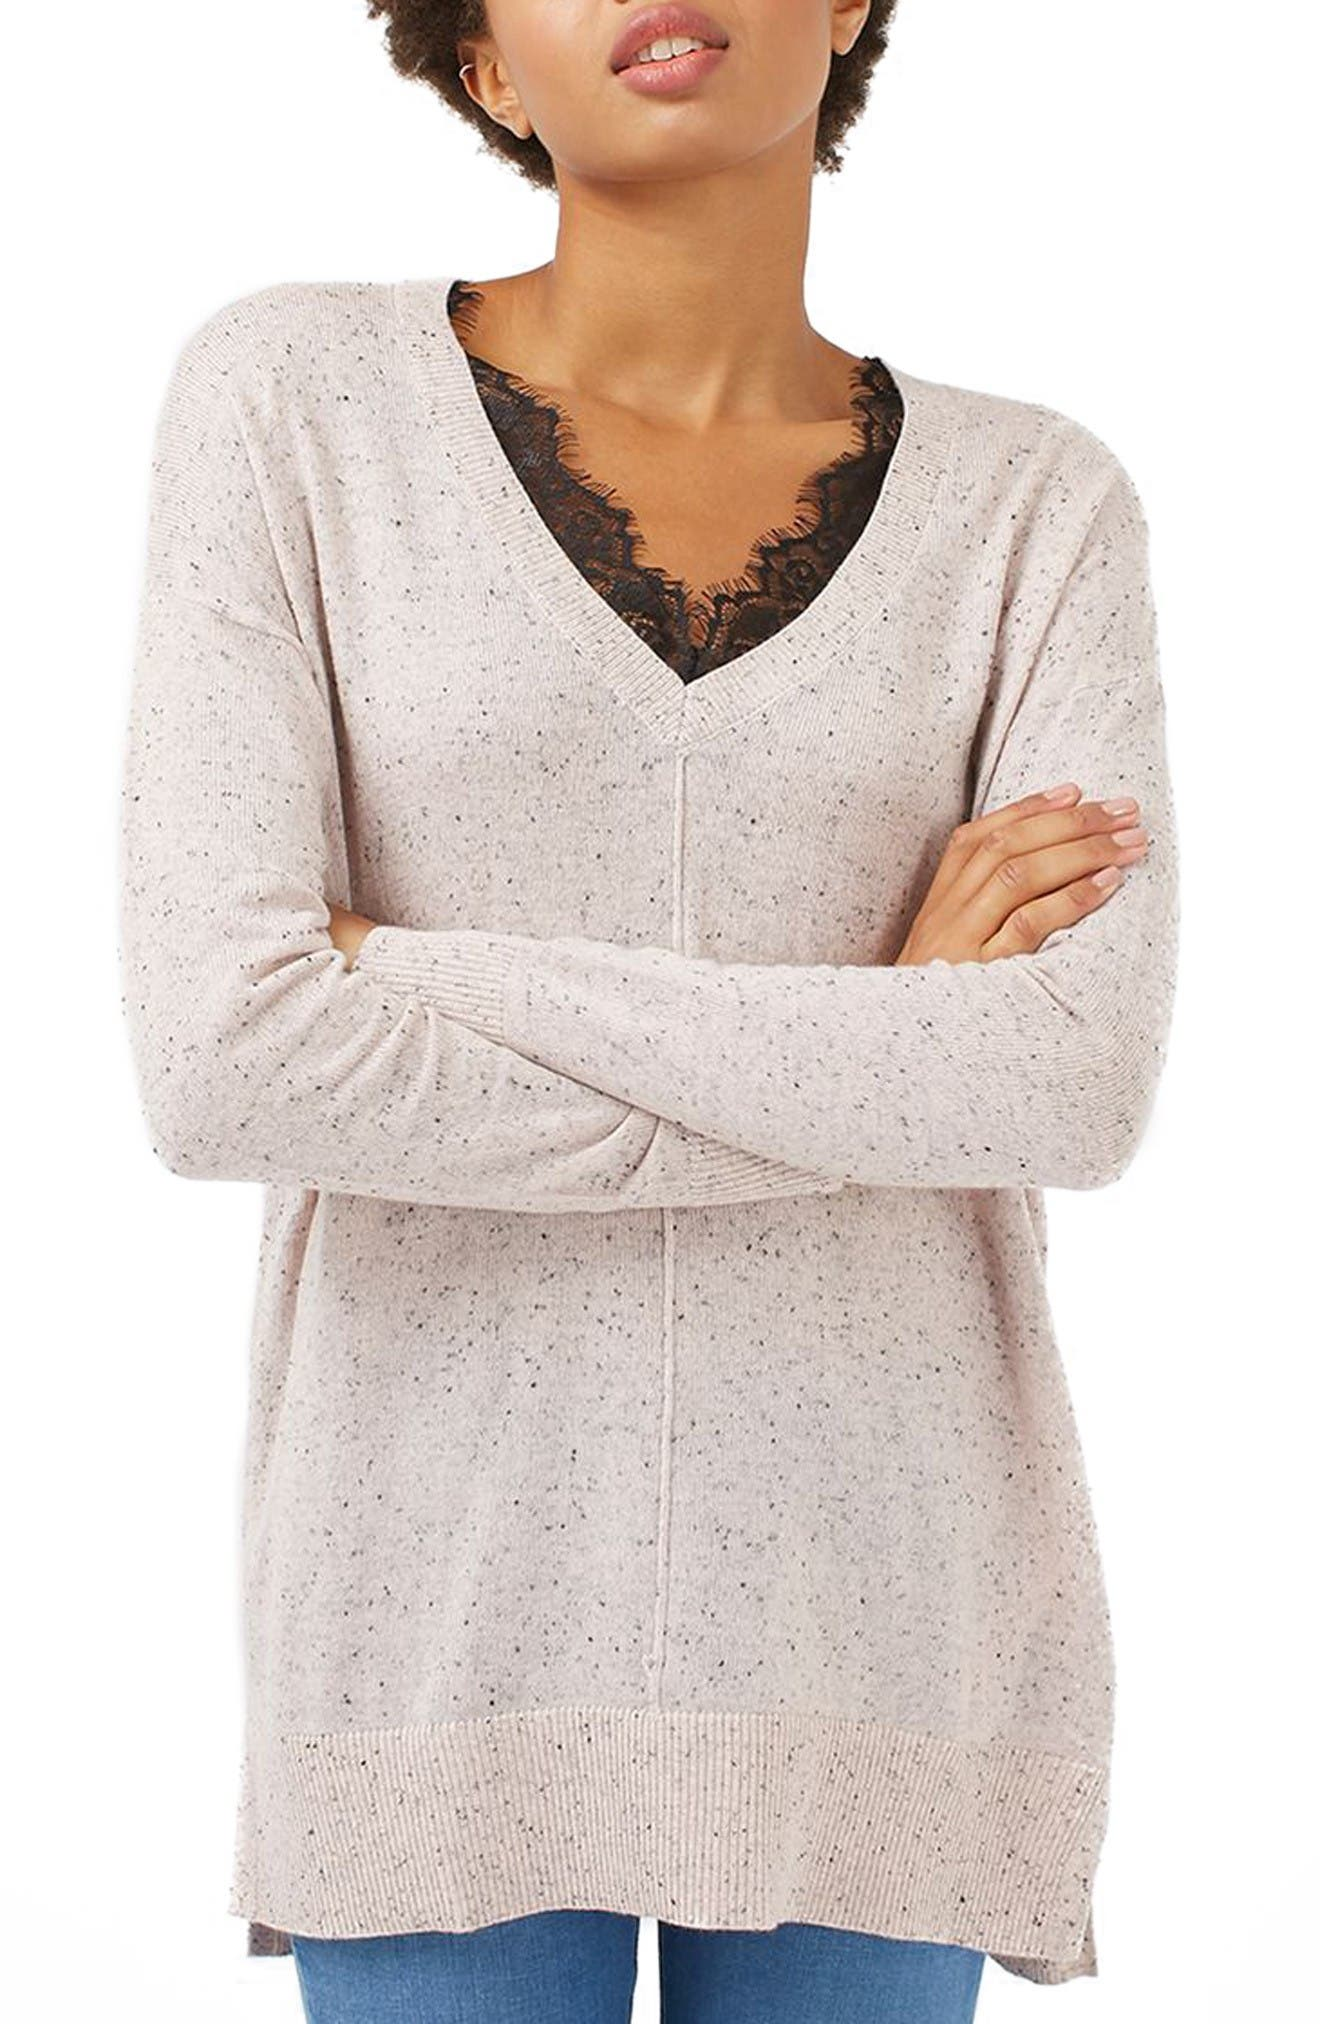 Alternate Image 1 Selected - Topshop Lace V-Neck Sweater Tunic